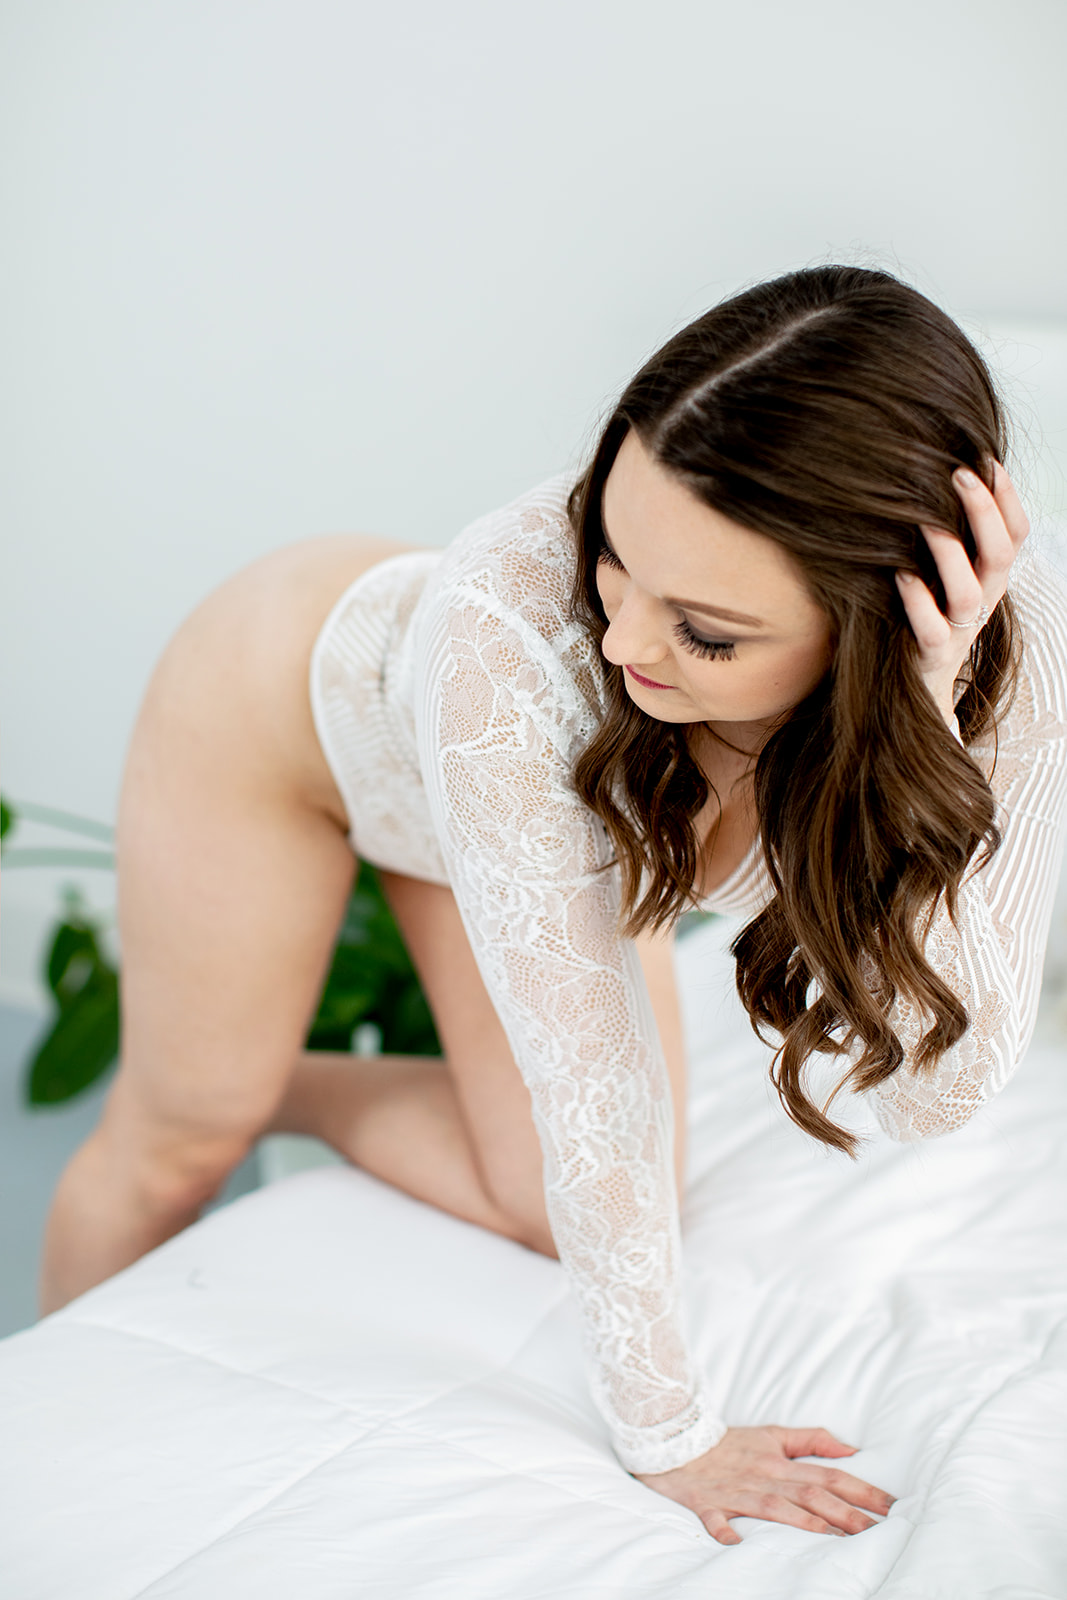 Every Girl Studio Bridal Boudoir Session - Image Property of www.j-dphoto.com